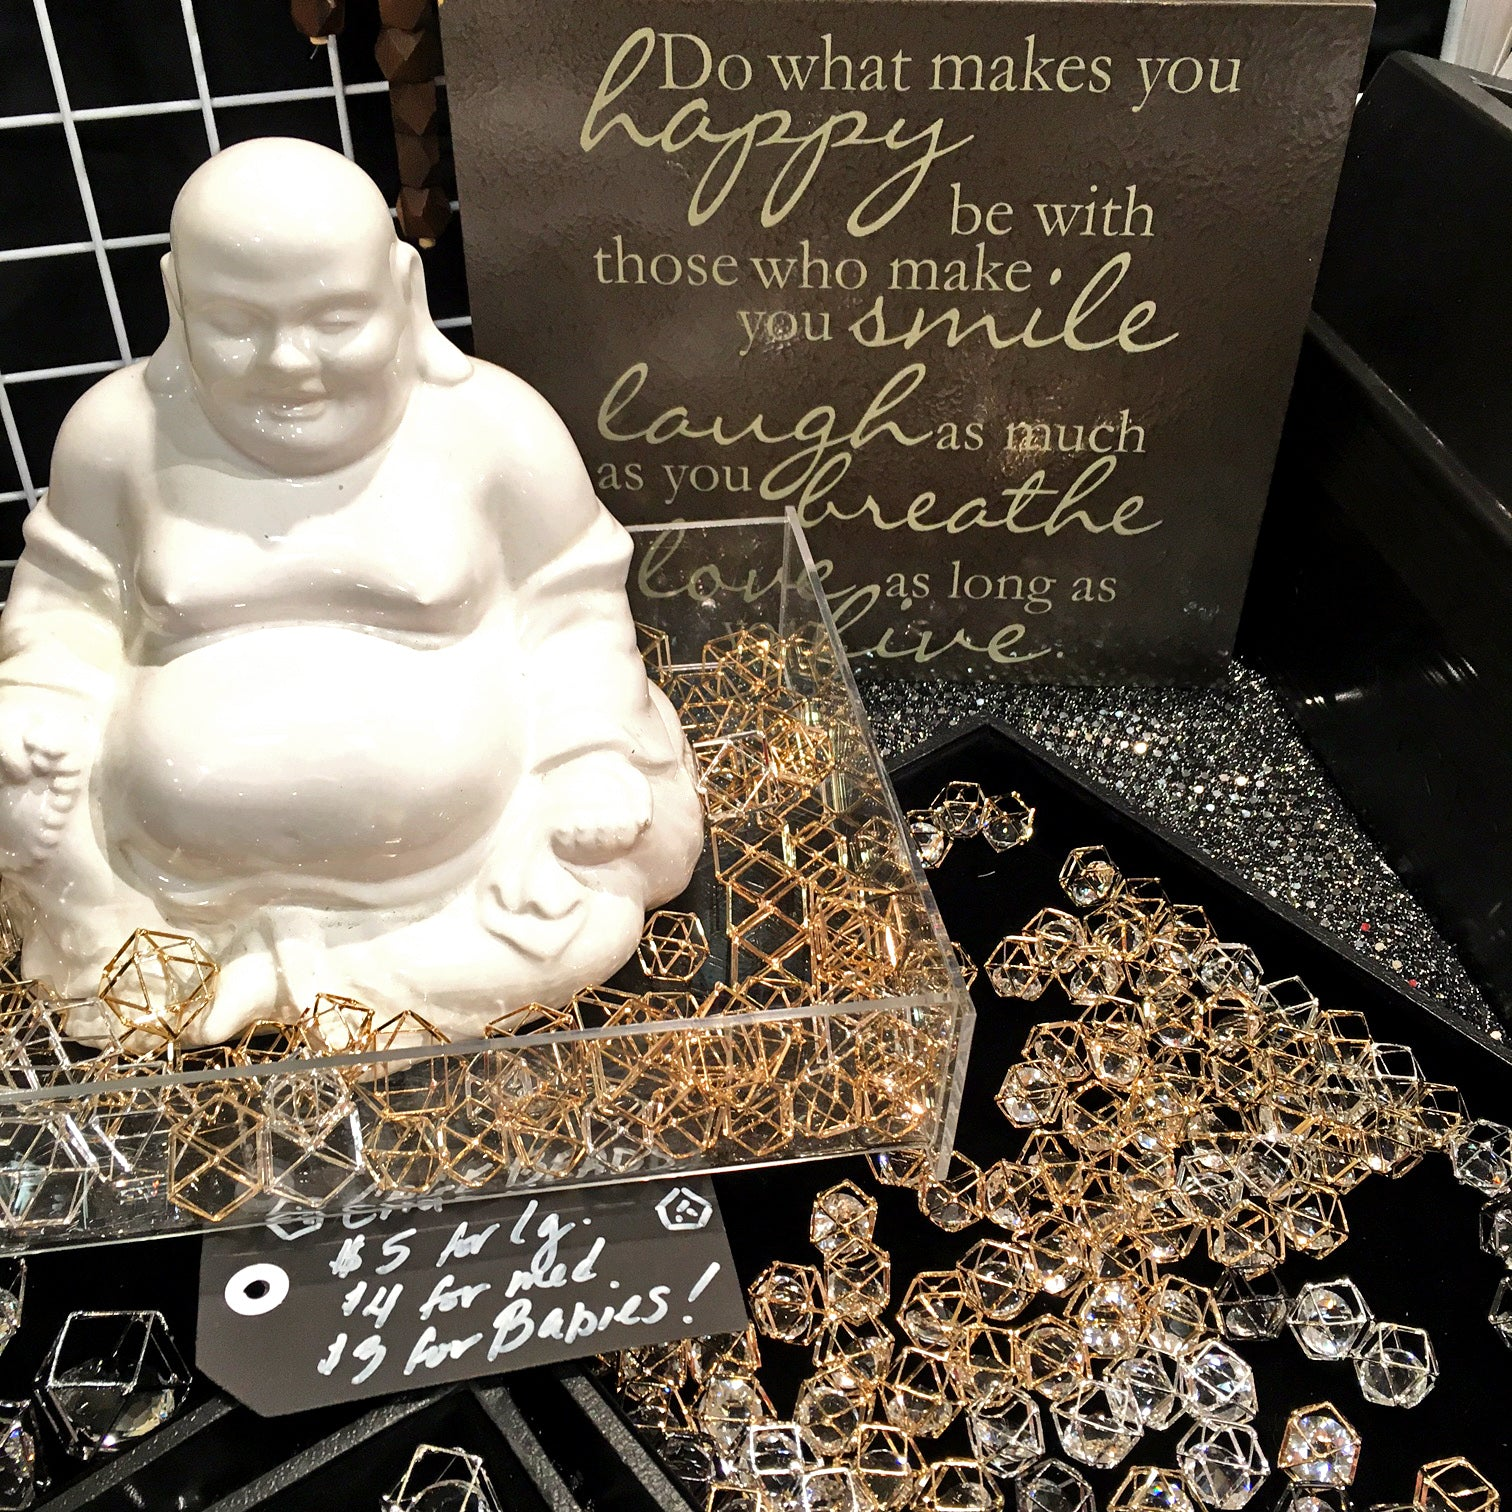 Buddha loves to bead - Geometric beads for jewelry making - unique booth setup display idea from Jesse James Beads